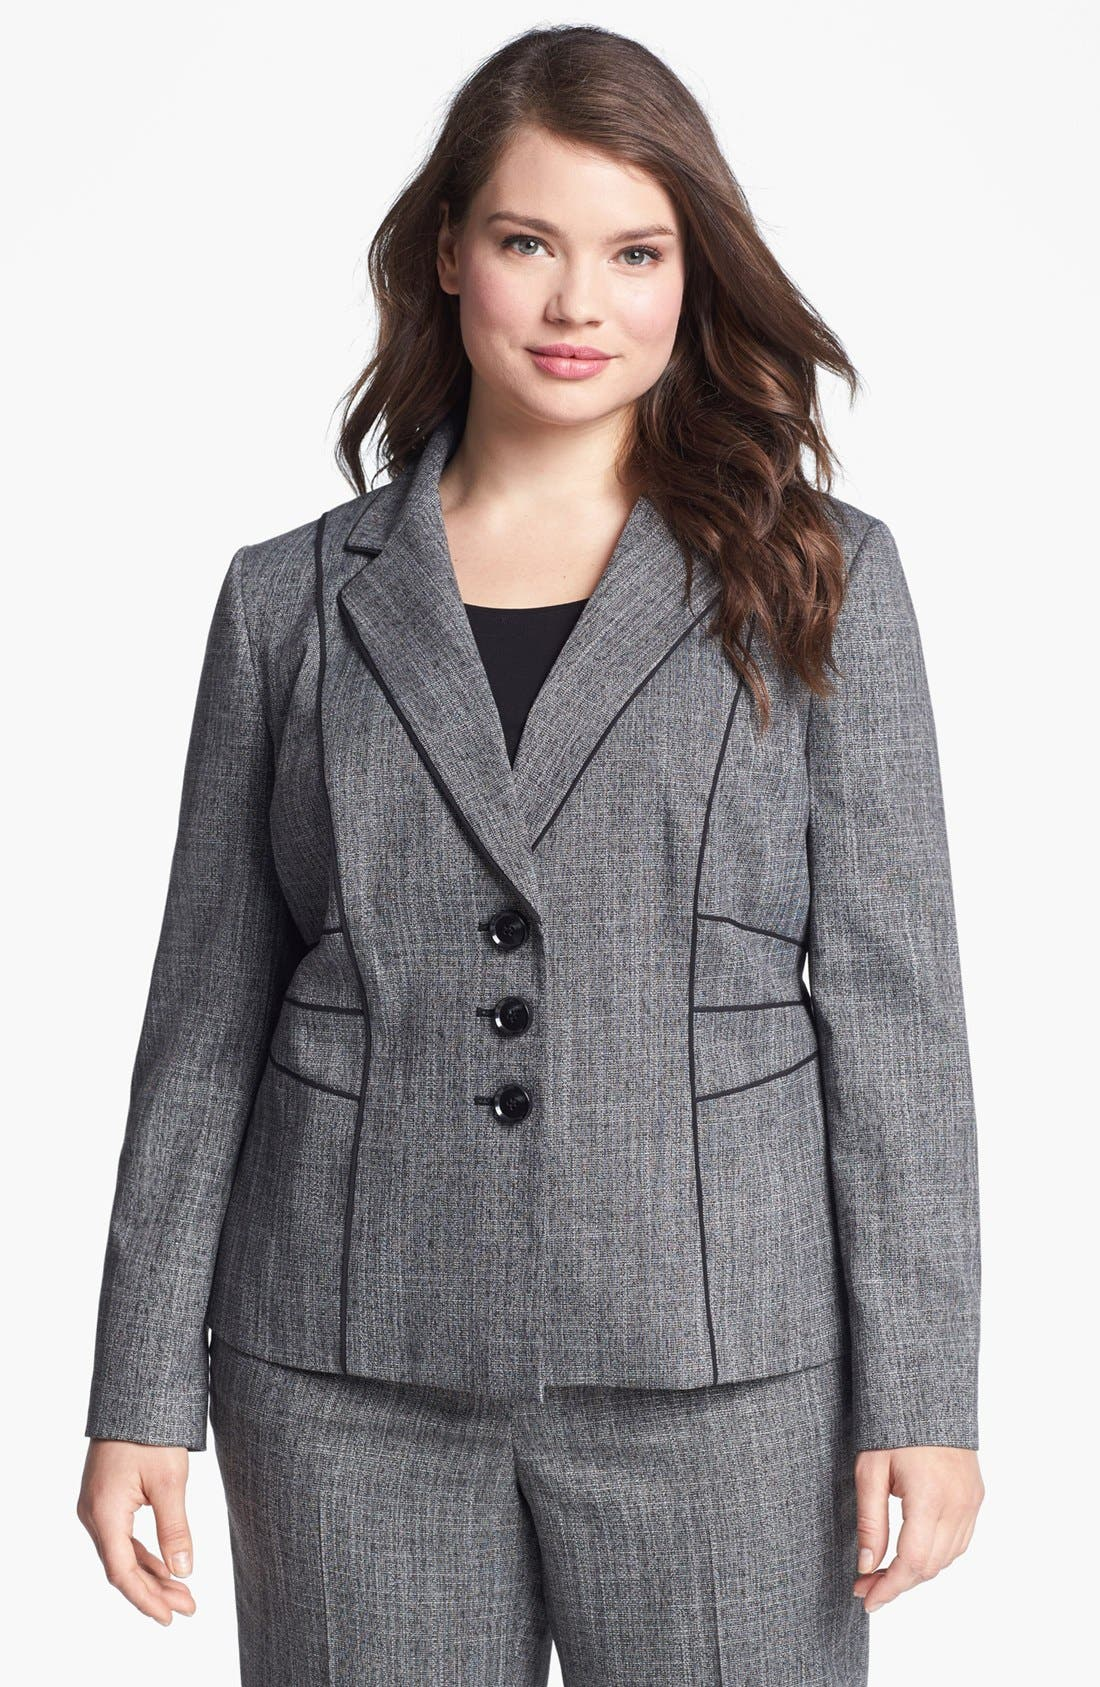 Alternate Image 1 Selected - Sejour 'Gibson' Piped Suit Jacket (Plus Size)